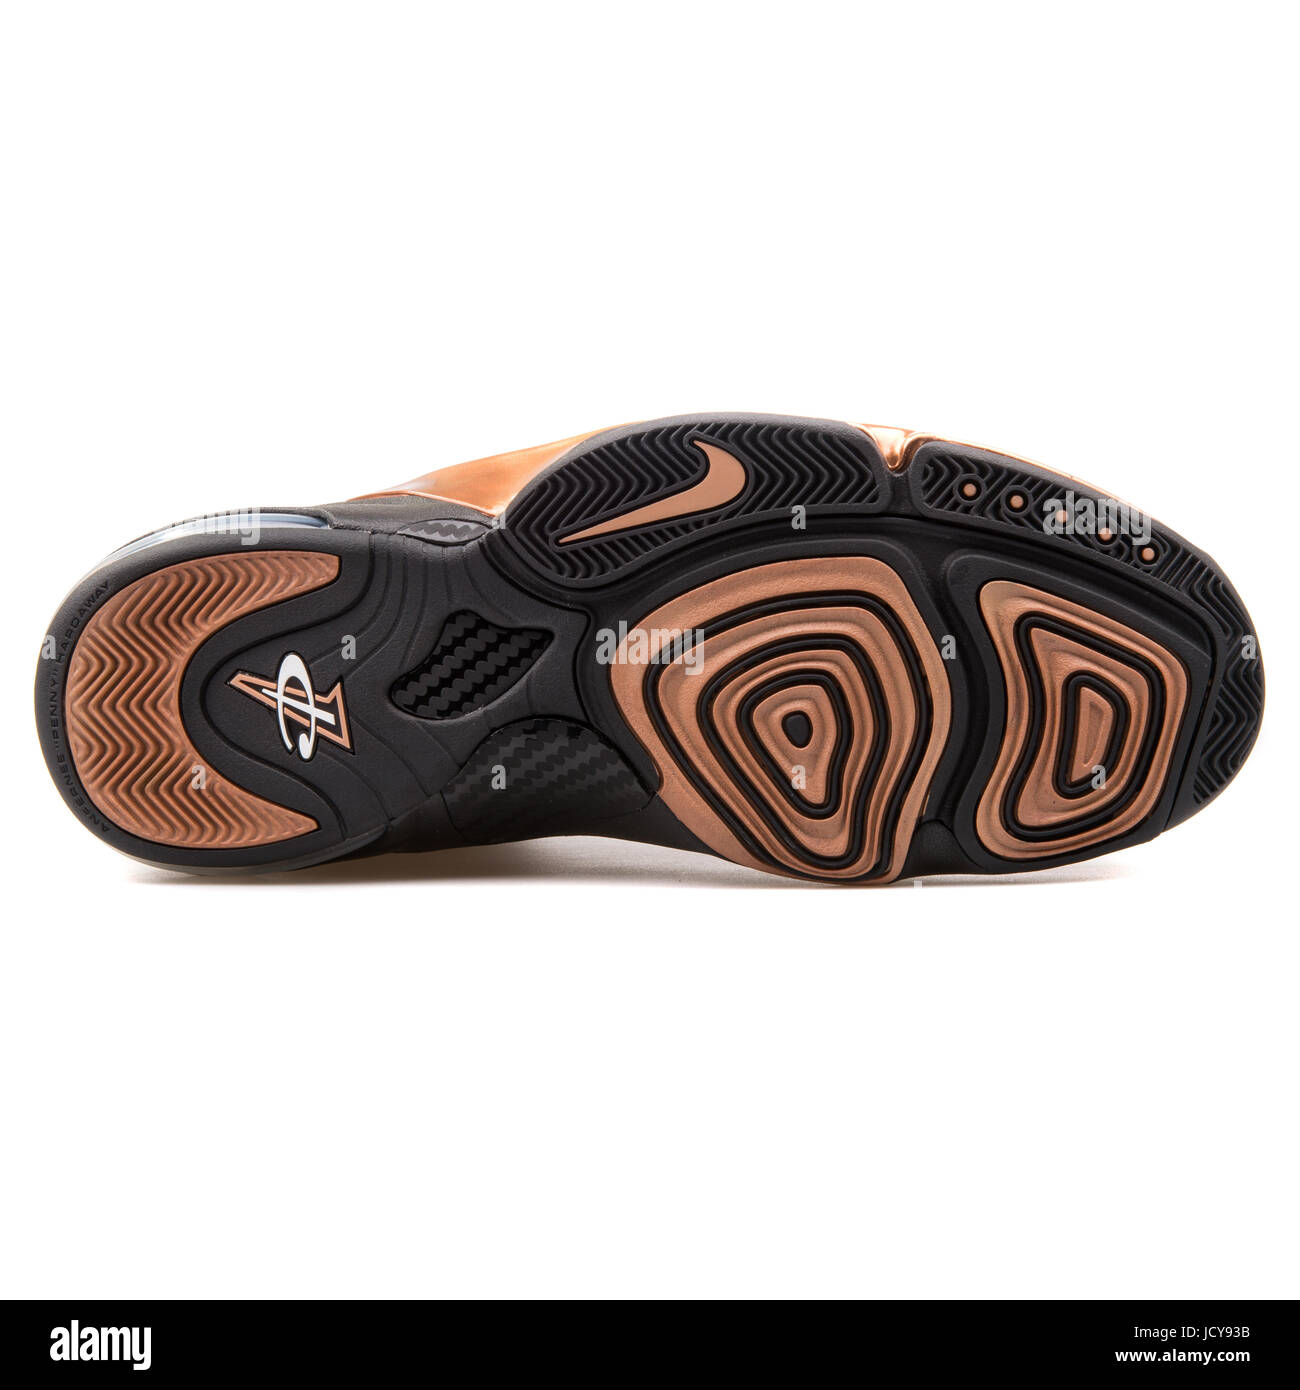 3625b2922a3d Nike Zoom Penny VI Black and Metallic Copper Men s Basketball Shoes -  749629-001 -